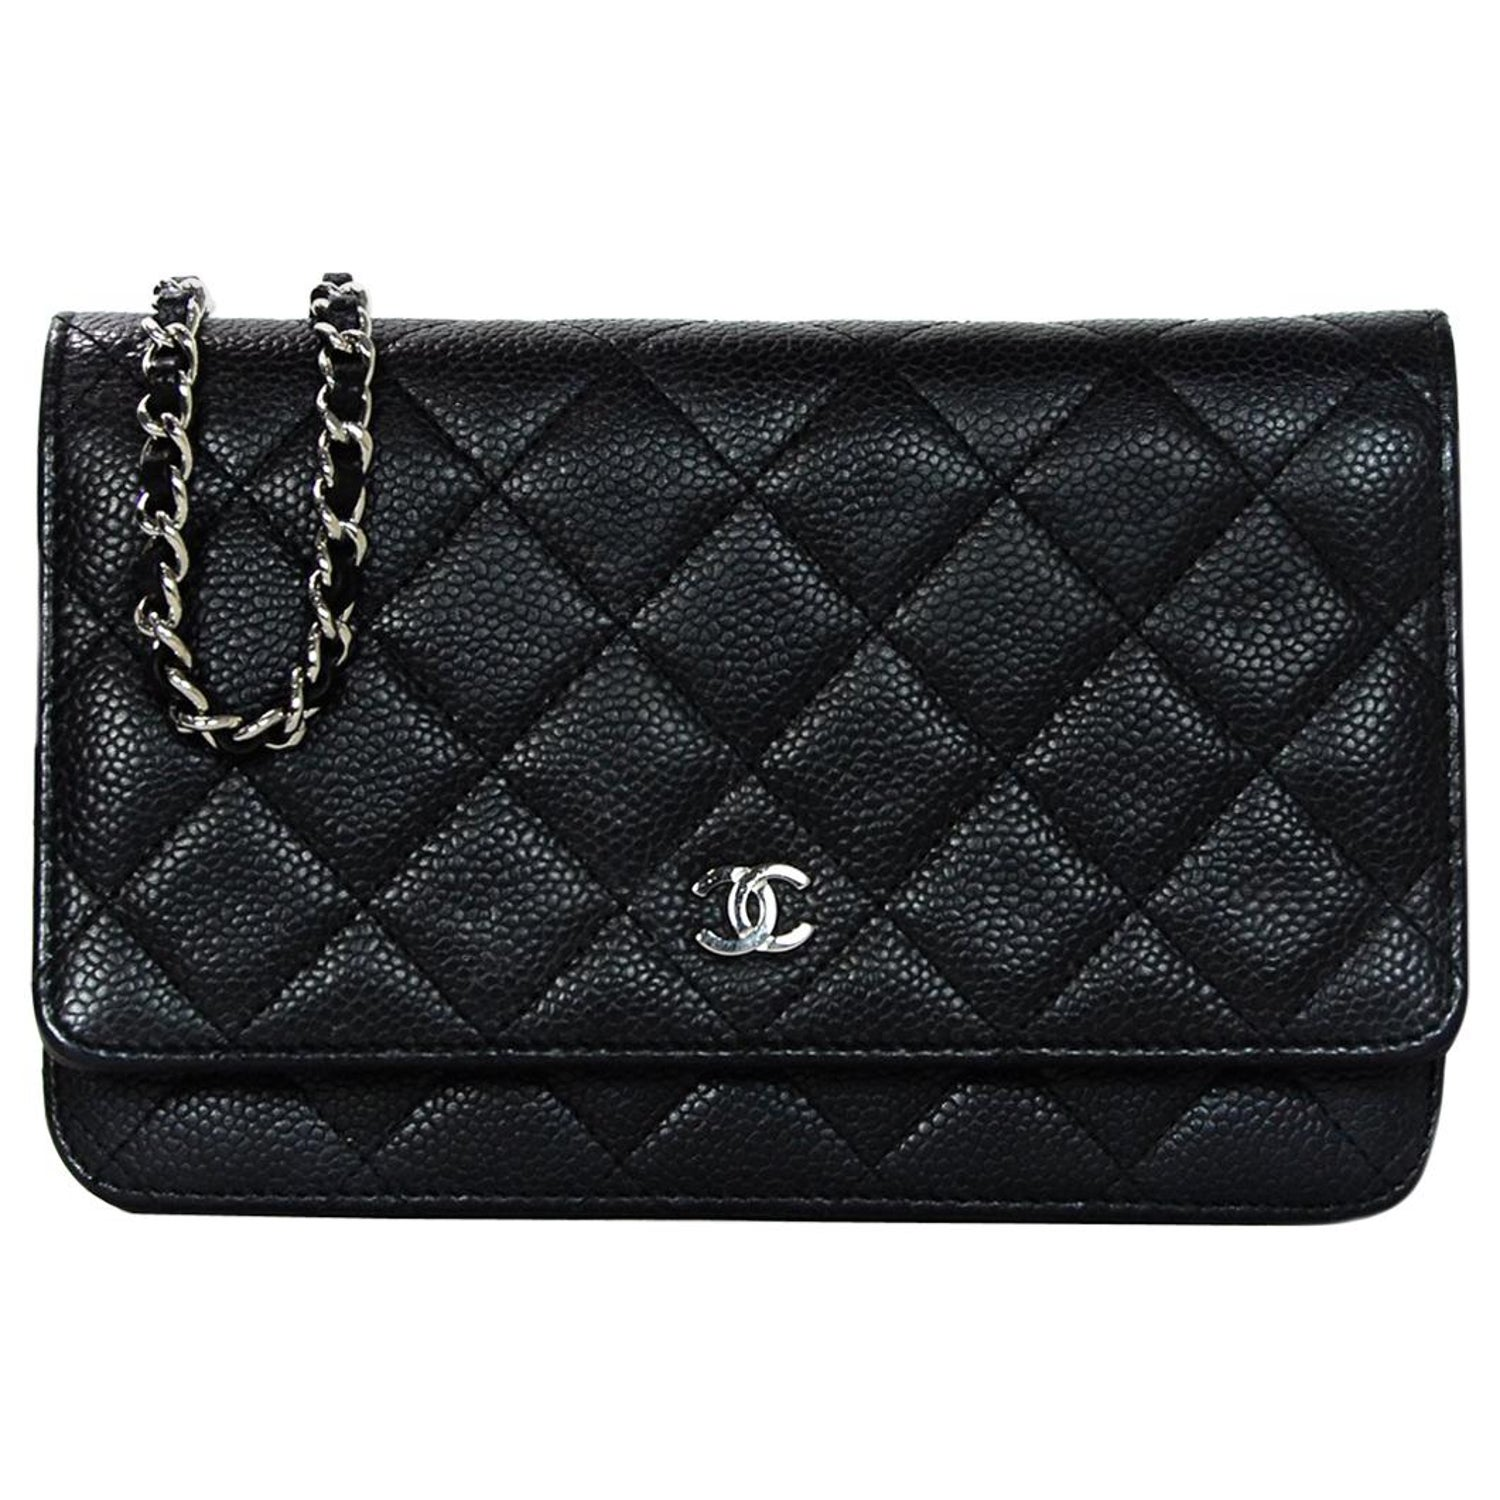 0d5b561c9290 Chanel Black Quilted Caviar Leather Wallet On A Chain WOC Crossbody Bag W/  DB For Sale at 1stdibs